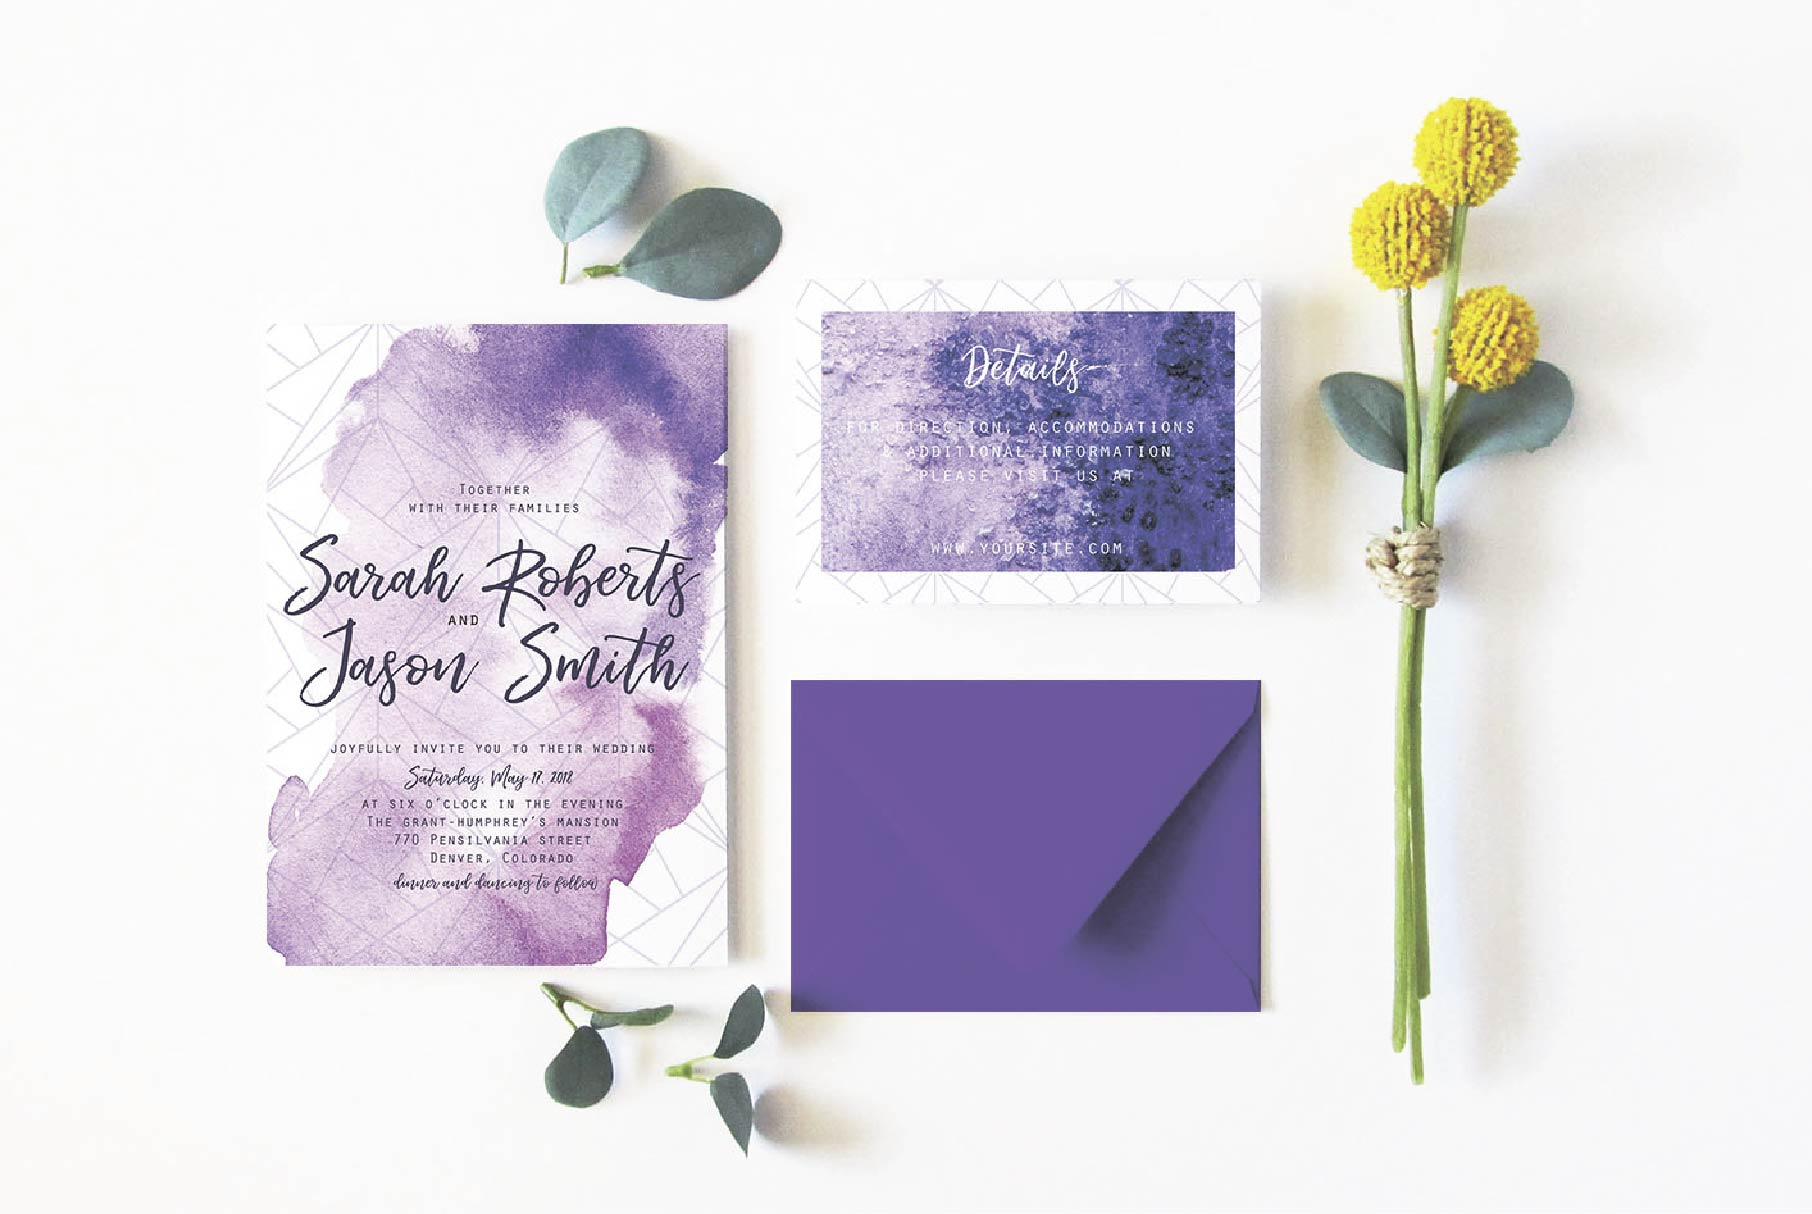 Ultra violet wedding invitation suit example image 3